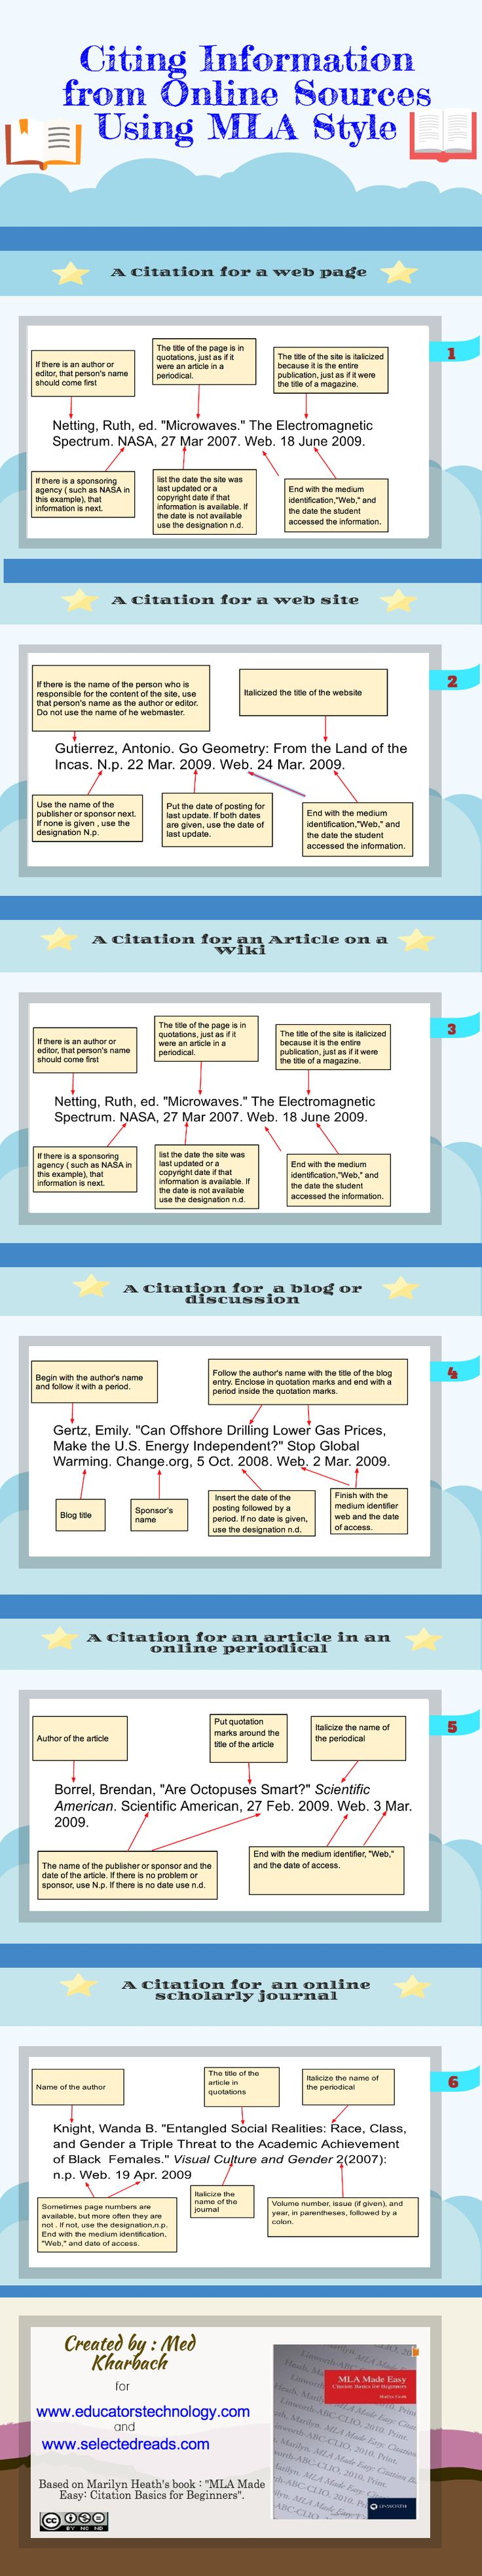 FREE downloadable poster on how to cite information from the Internet.  You know they are going to do it- they may as well do it right....